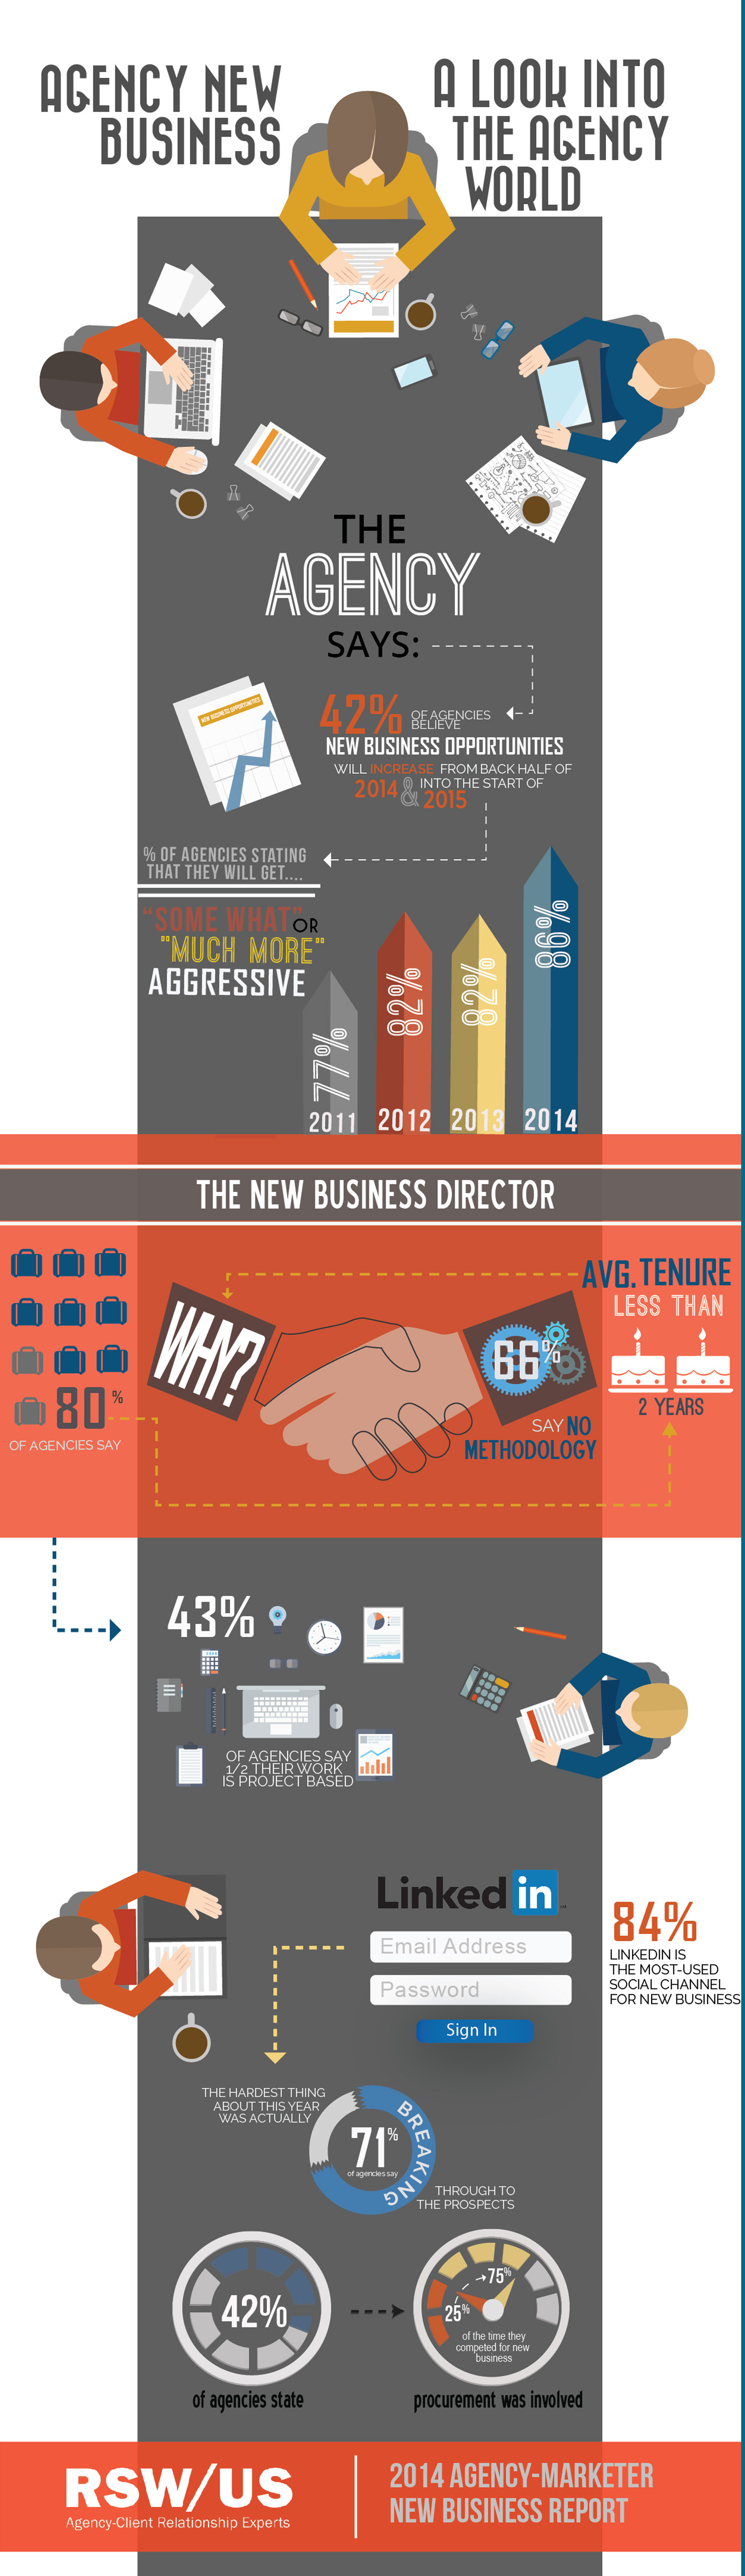 Agency New Business-A Look Into The Agency World-RSW/US Infographic